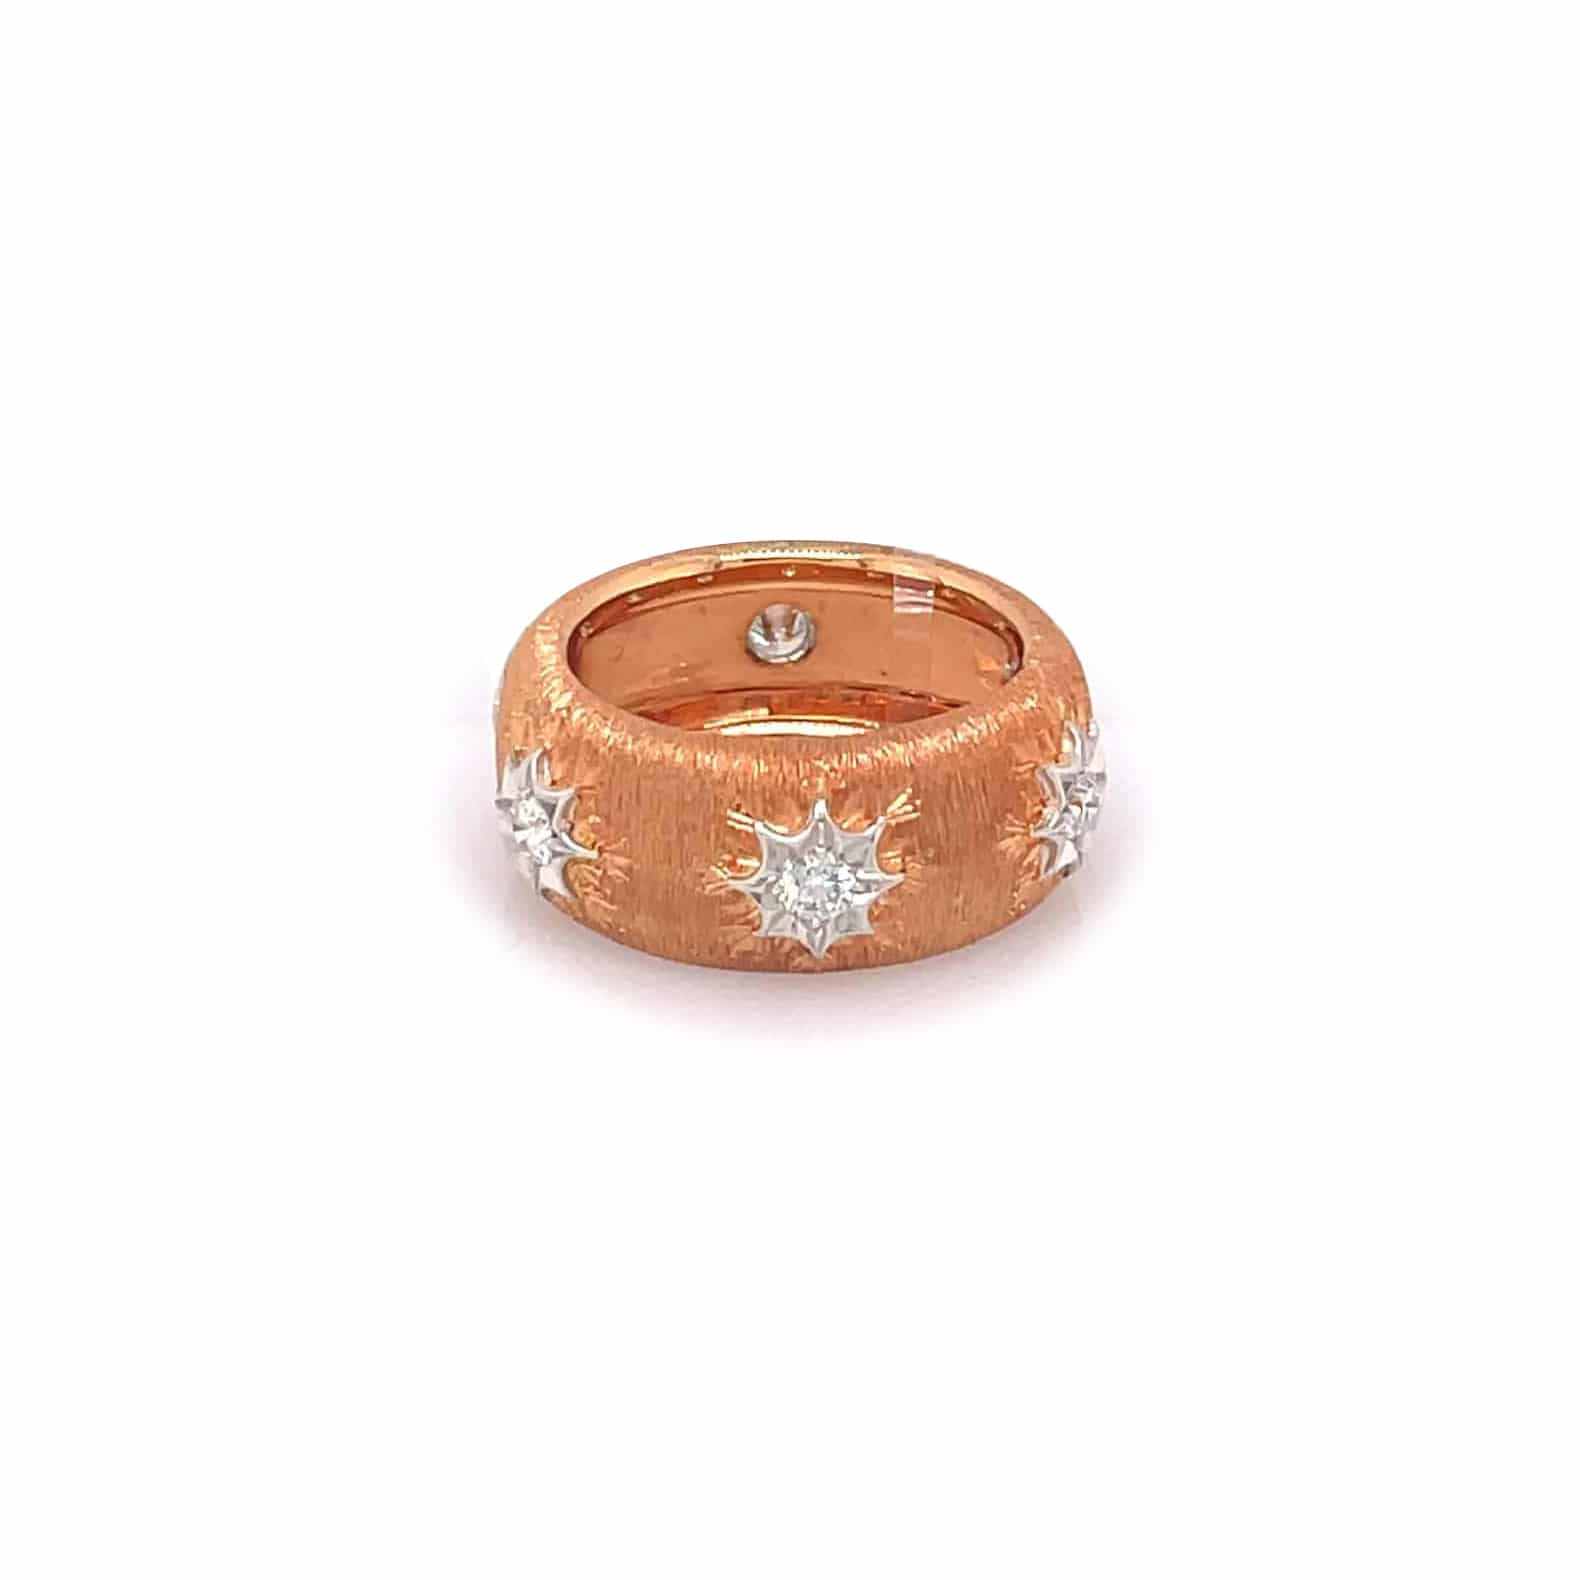 18K Rose Gold Ring with Diamond Accents